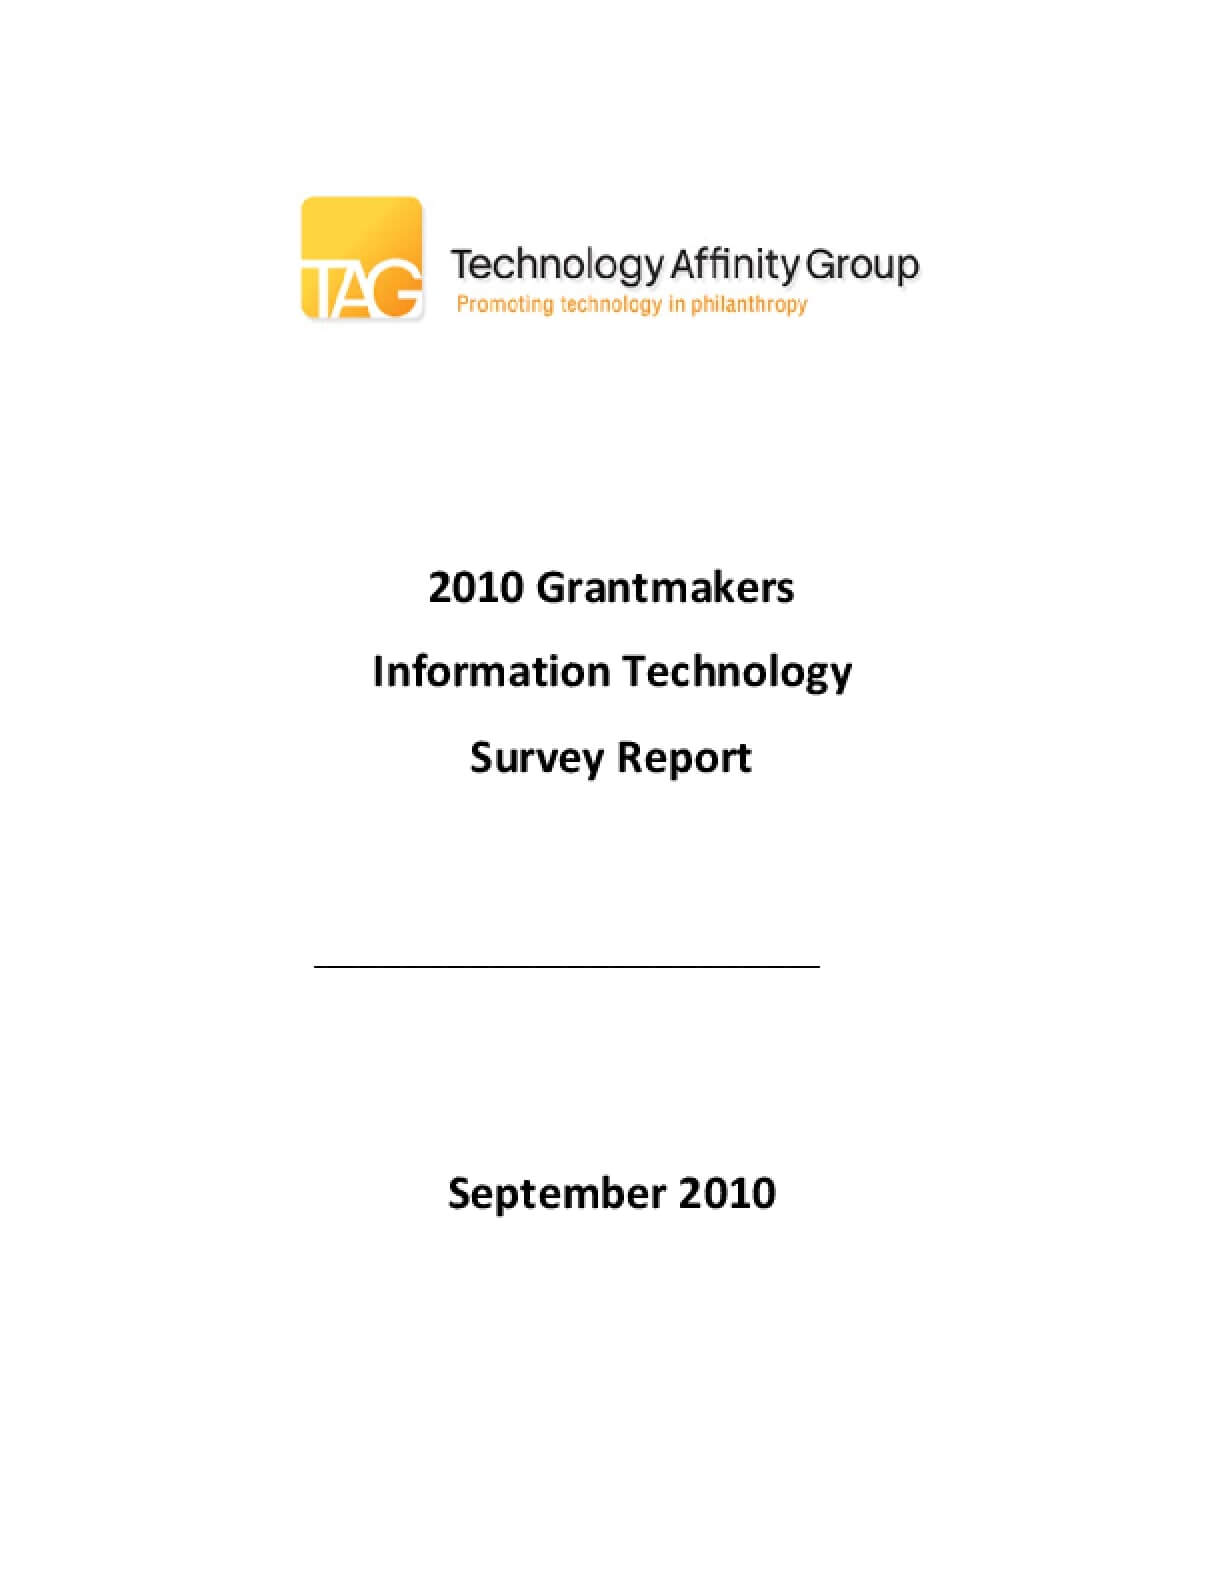 2010 Grantmakers Information Technology Survey Report